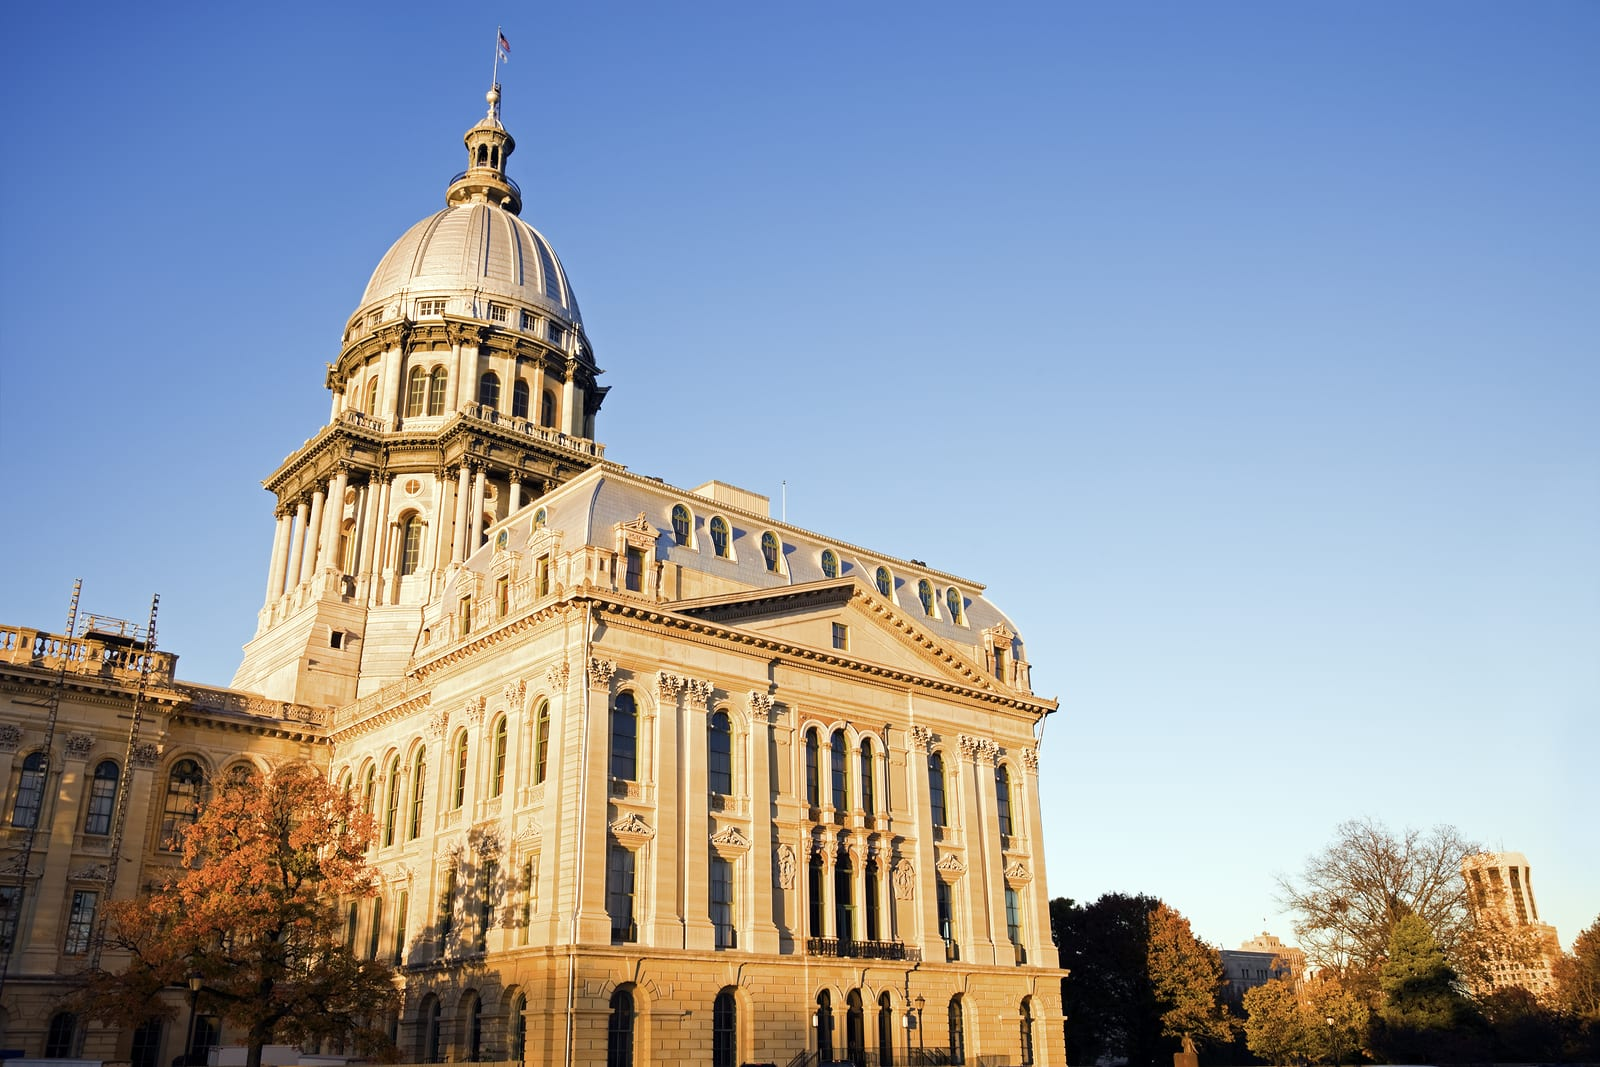 Illinois News: Task Force Recommends Consolidating Downstate, Suburban Police, Fire Pensions